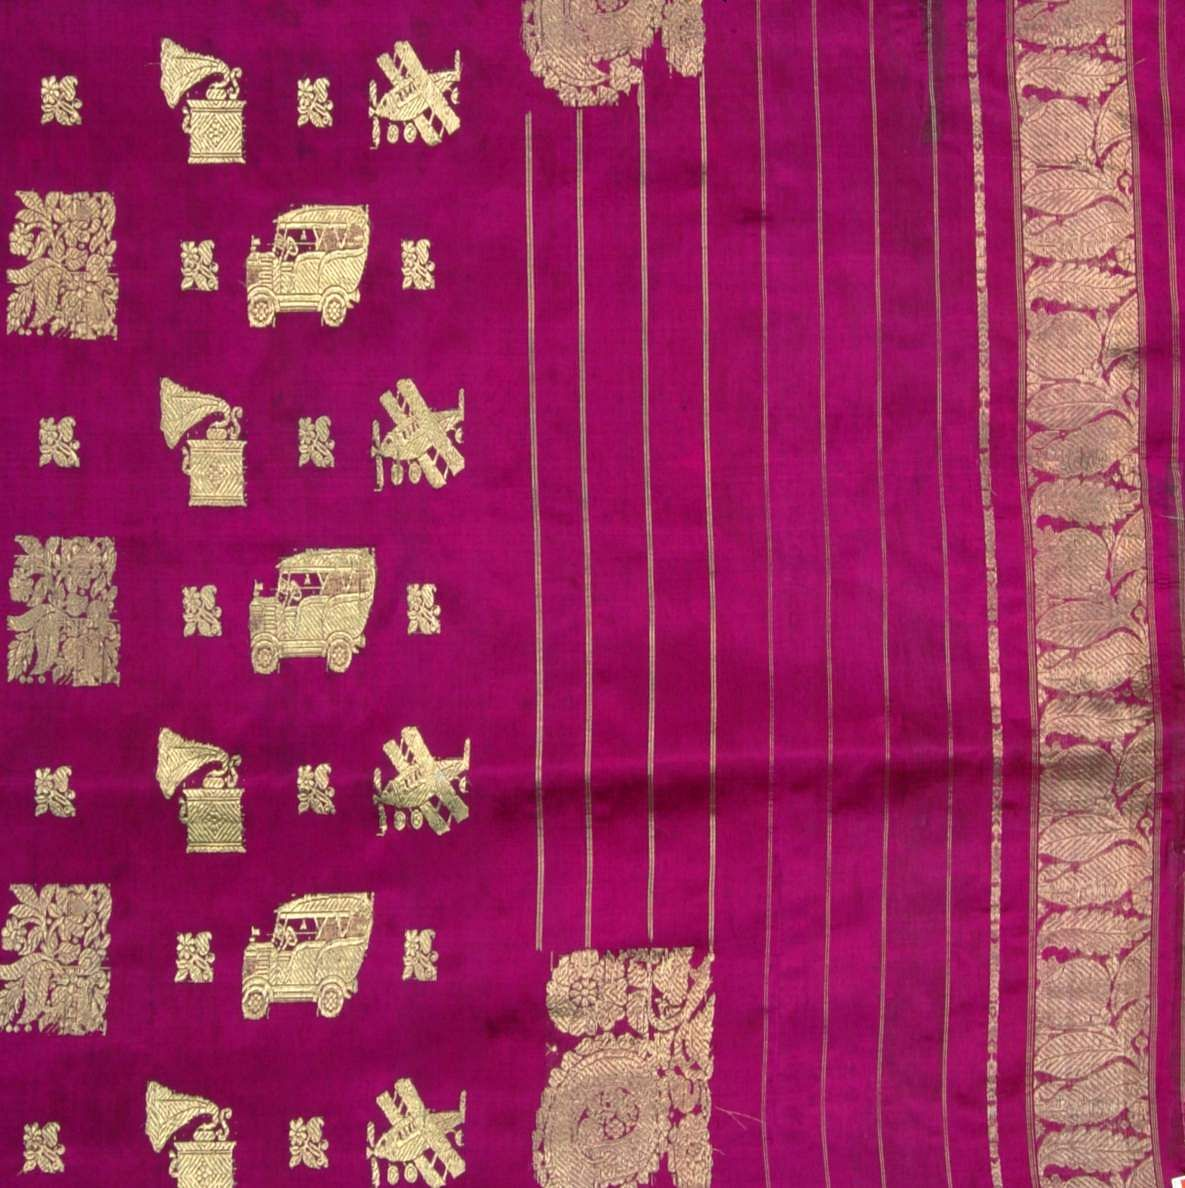 The Sari with 20th Century Motifs